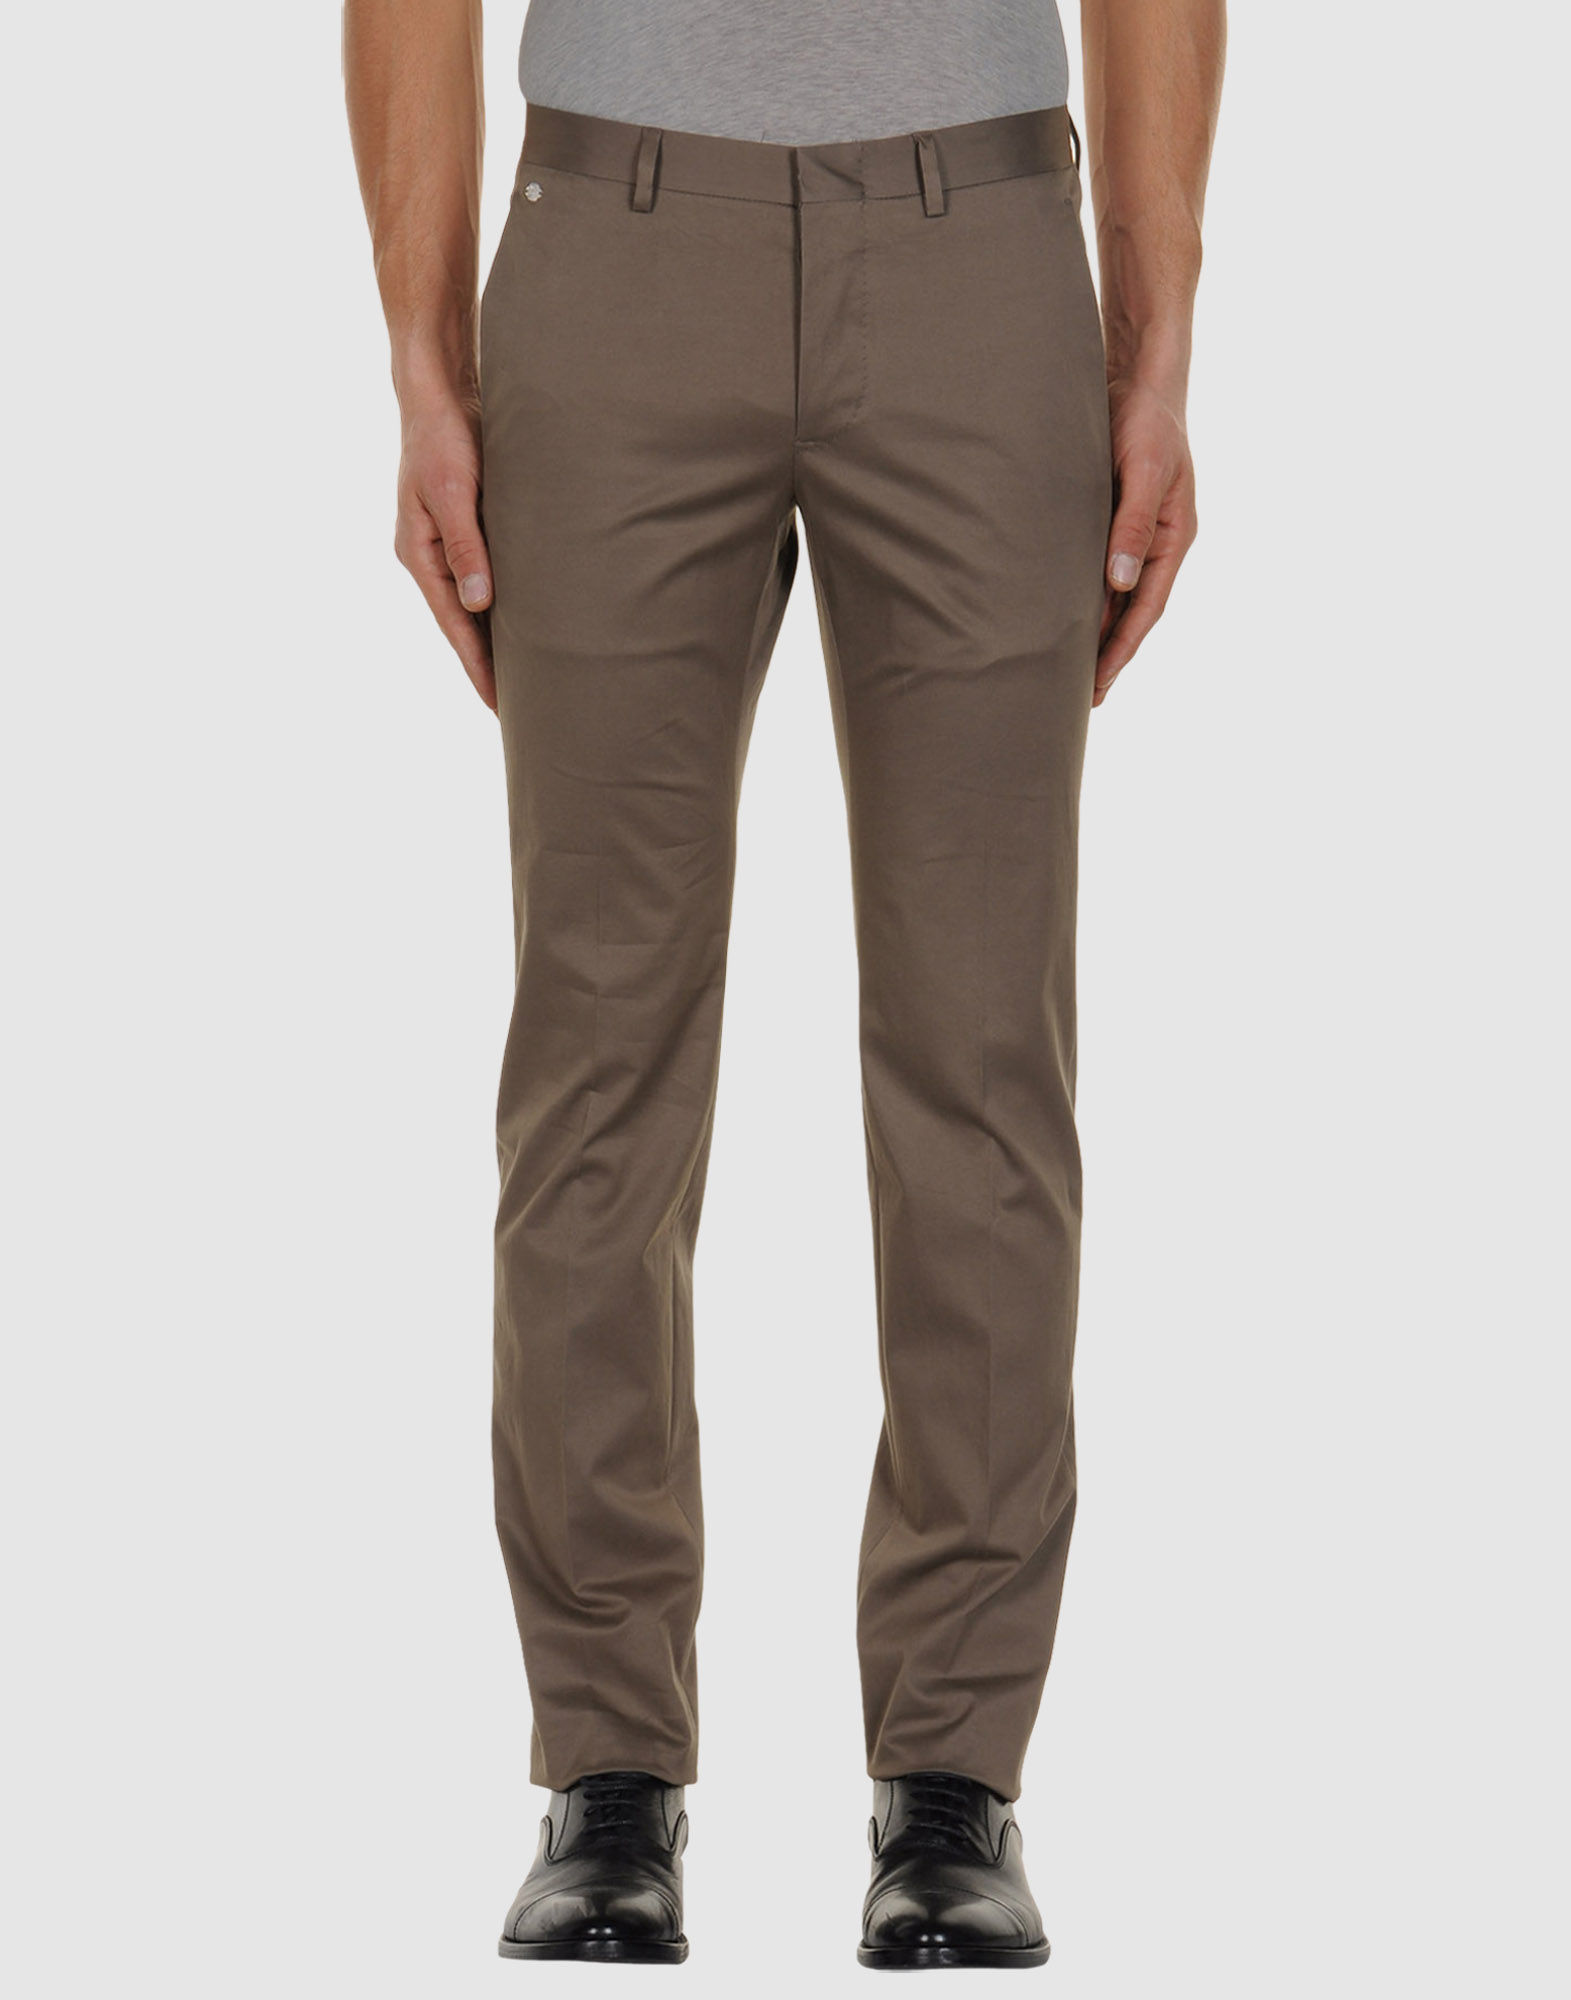 Shop a broad selection of mens pants. See our range of mens dress slacks and mens casual pants, including: khakis, chinos, denim and shorts, perfect for any occasion. Shop the full range of Haggar mens pants now. Haggar Clothing Co.